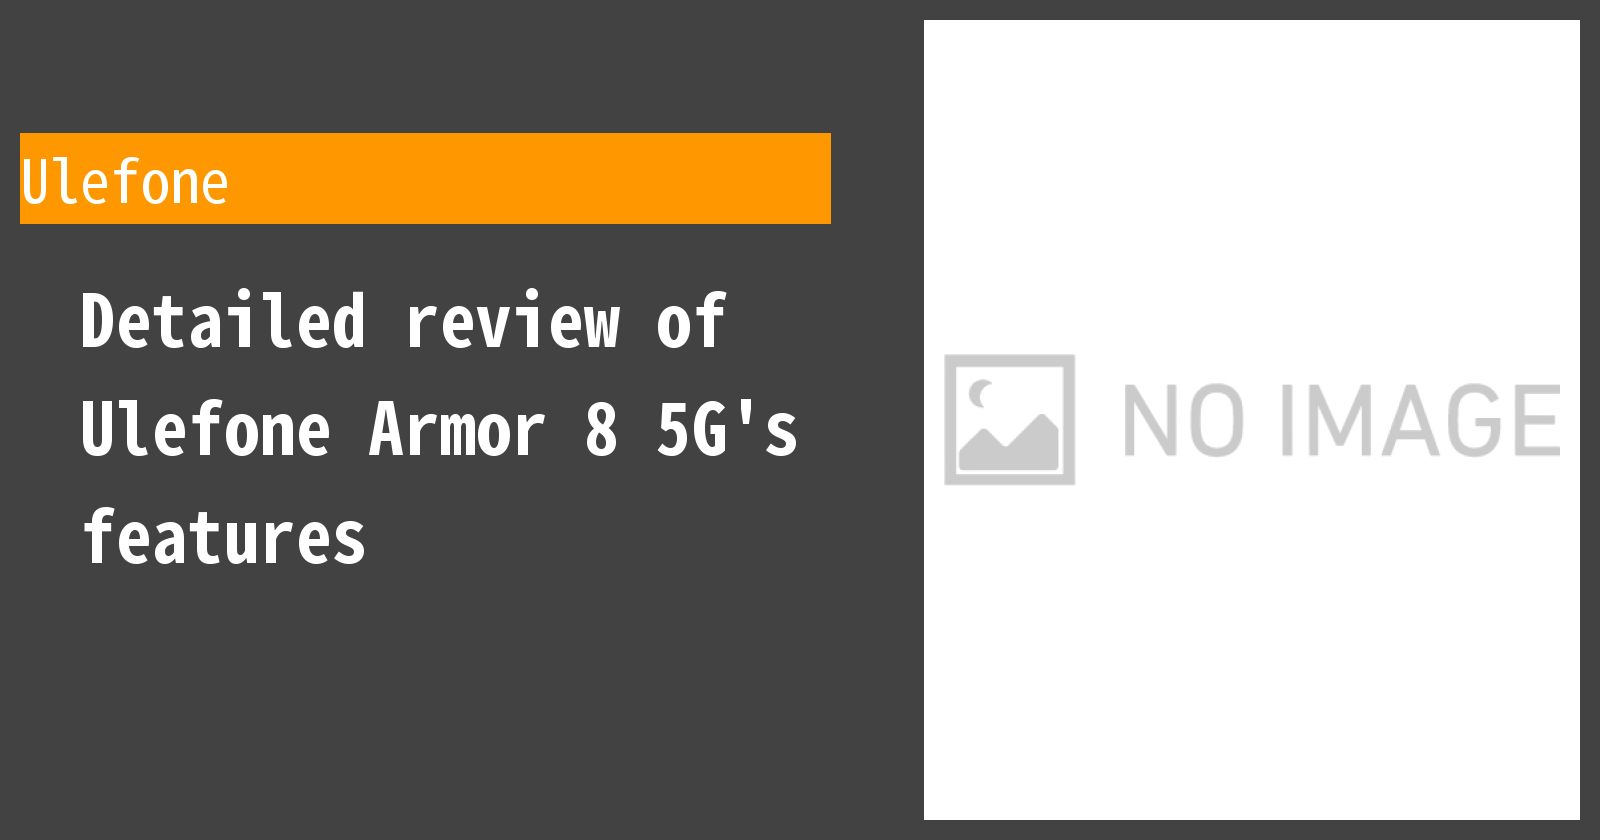 Detailed review of Ulefone Armor 8 5G's features